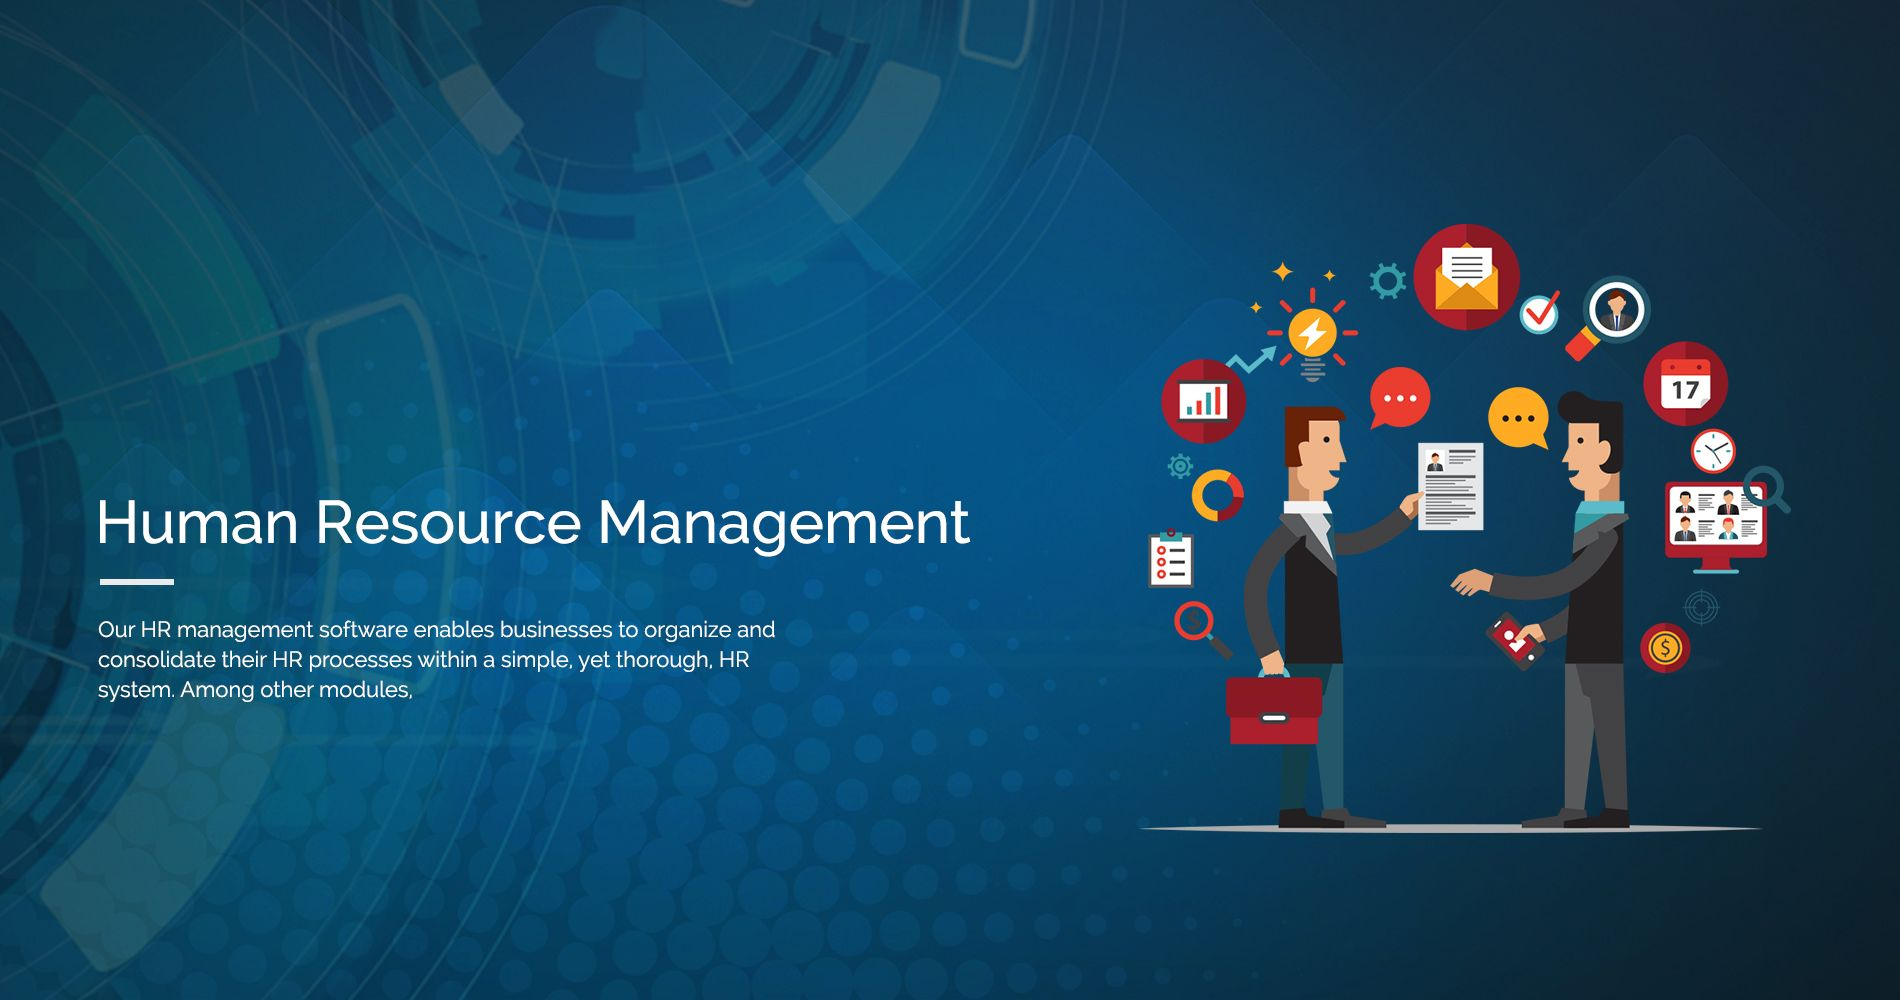 Hrms Solutions Hris Hr Software Netroots Human Resource Management System Human Resources Information Technology Services